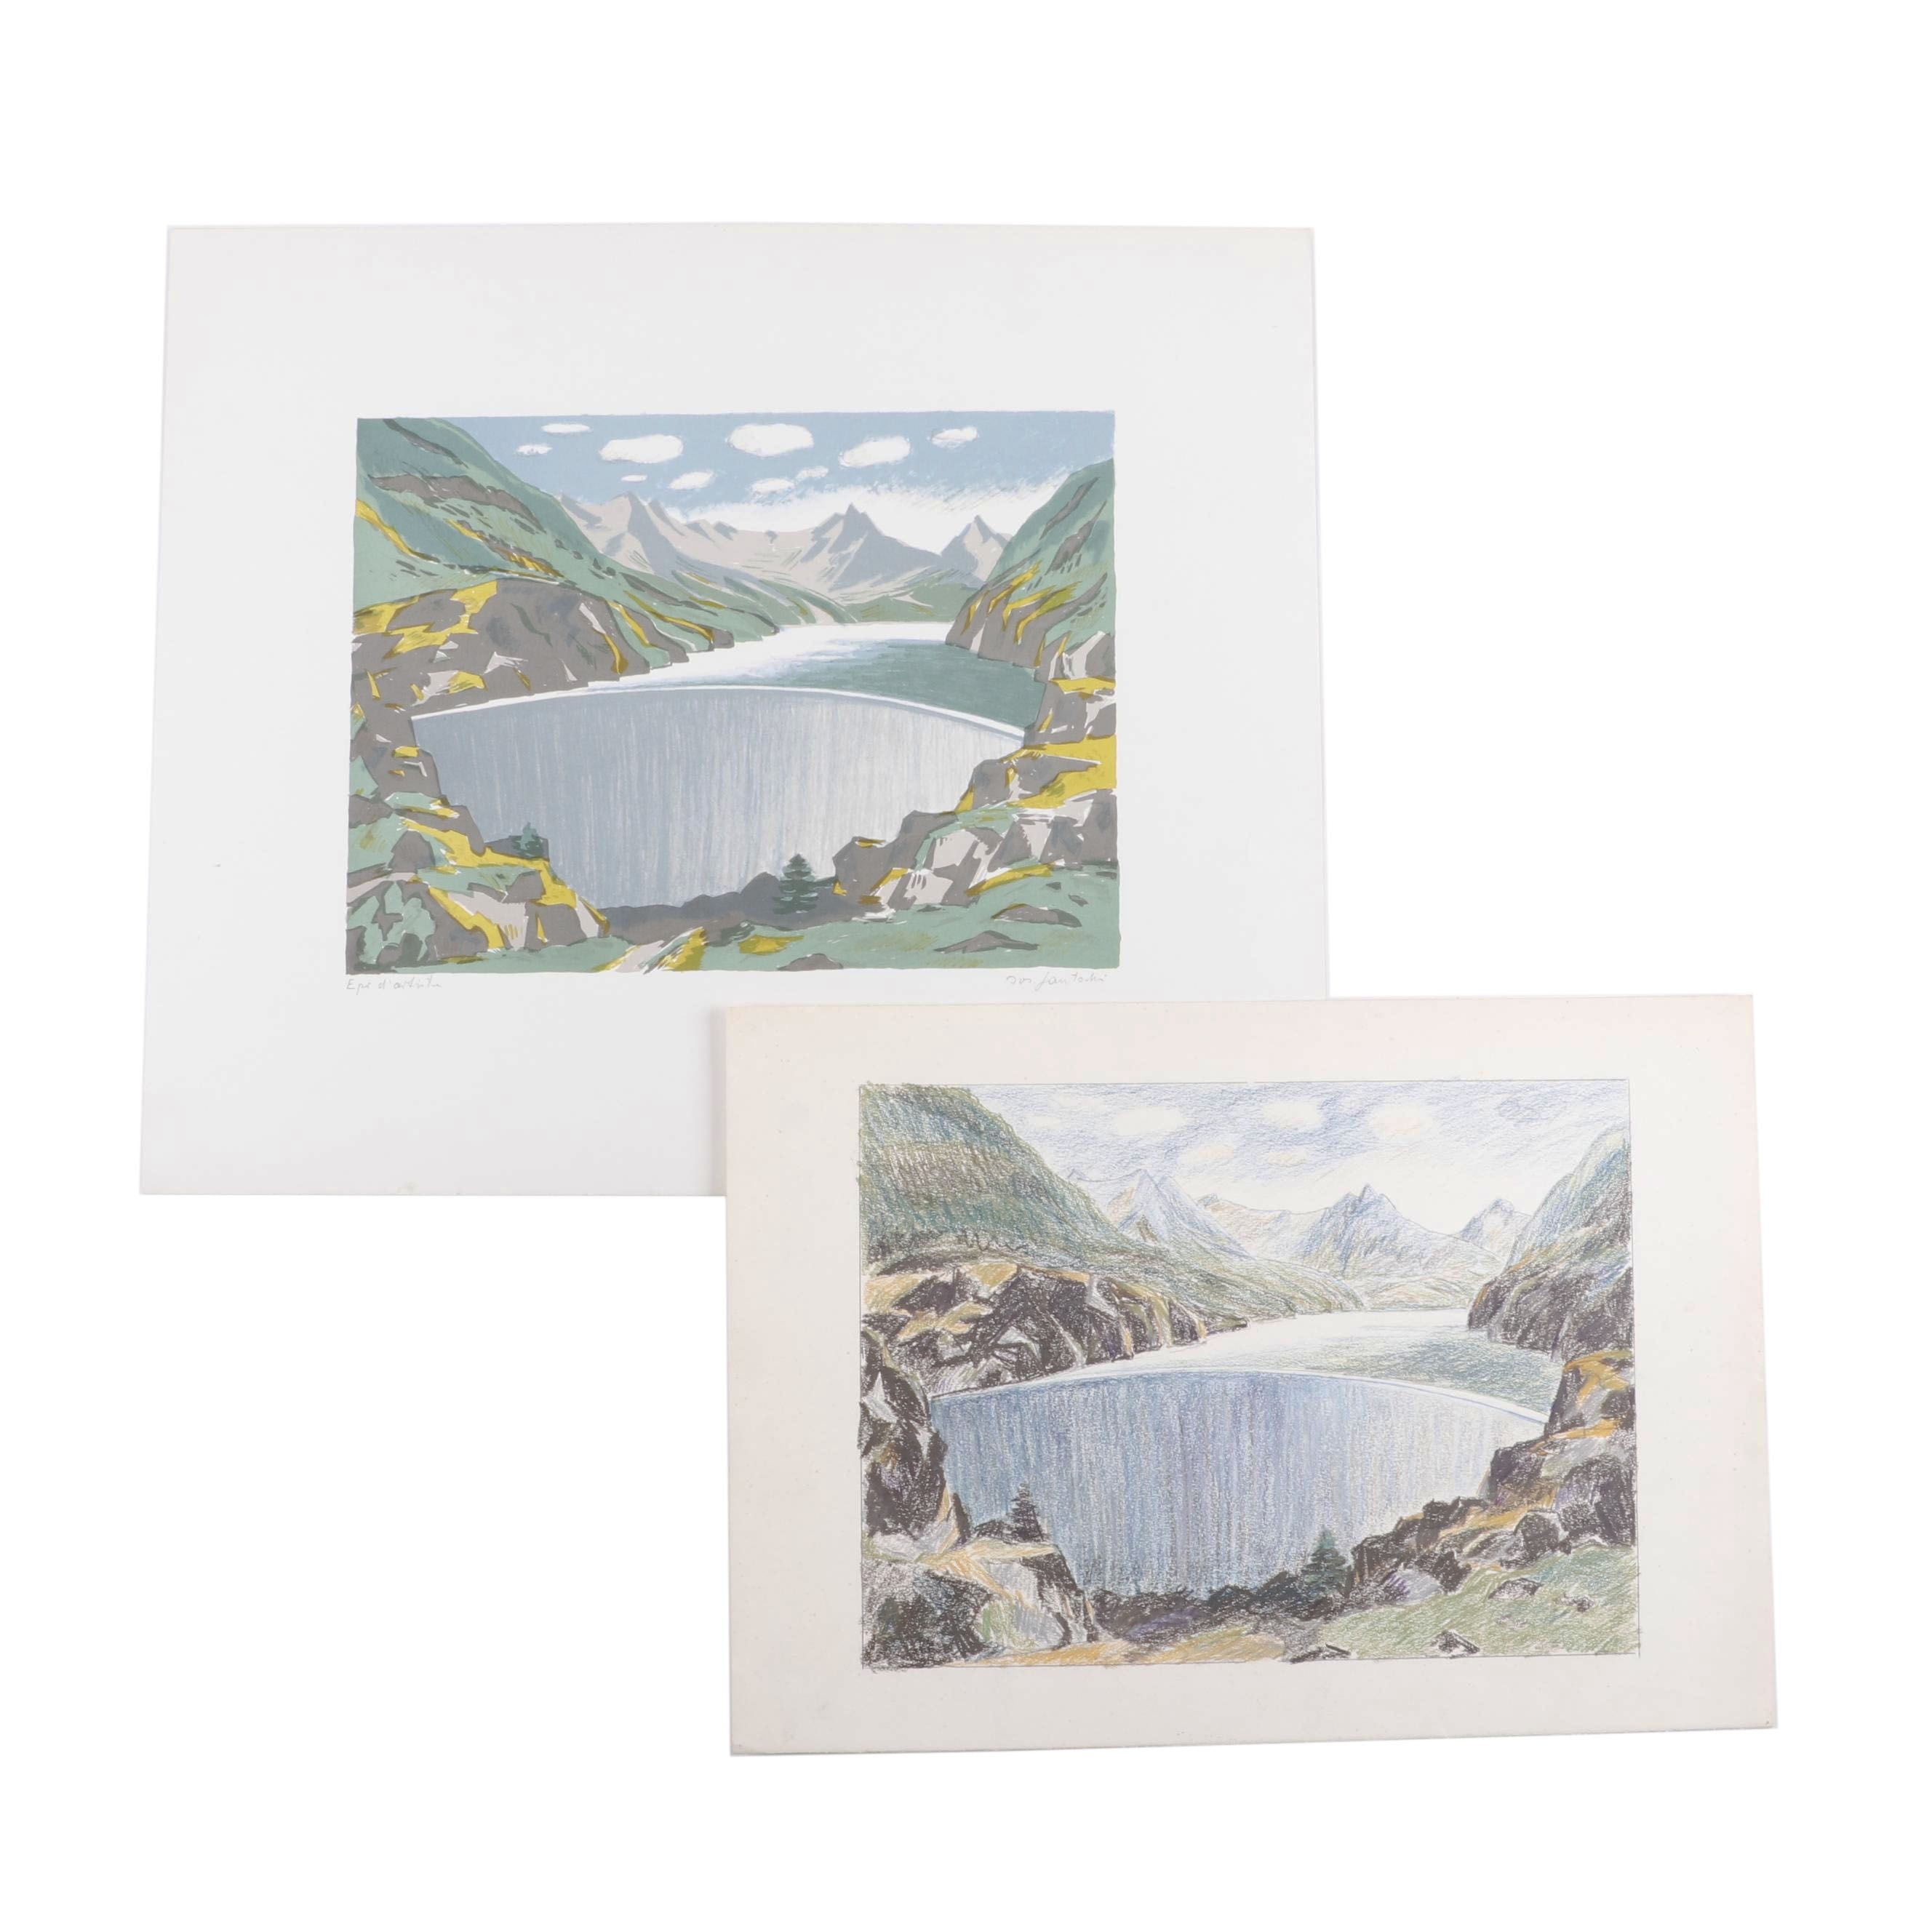 Late 20th Century Landscape Drawing and Lithograph